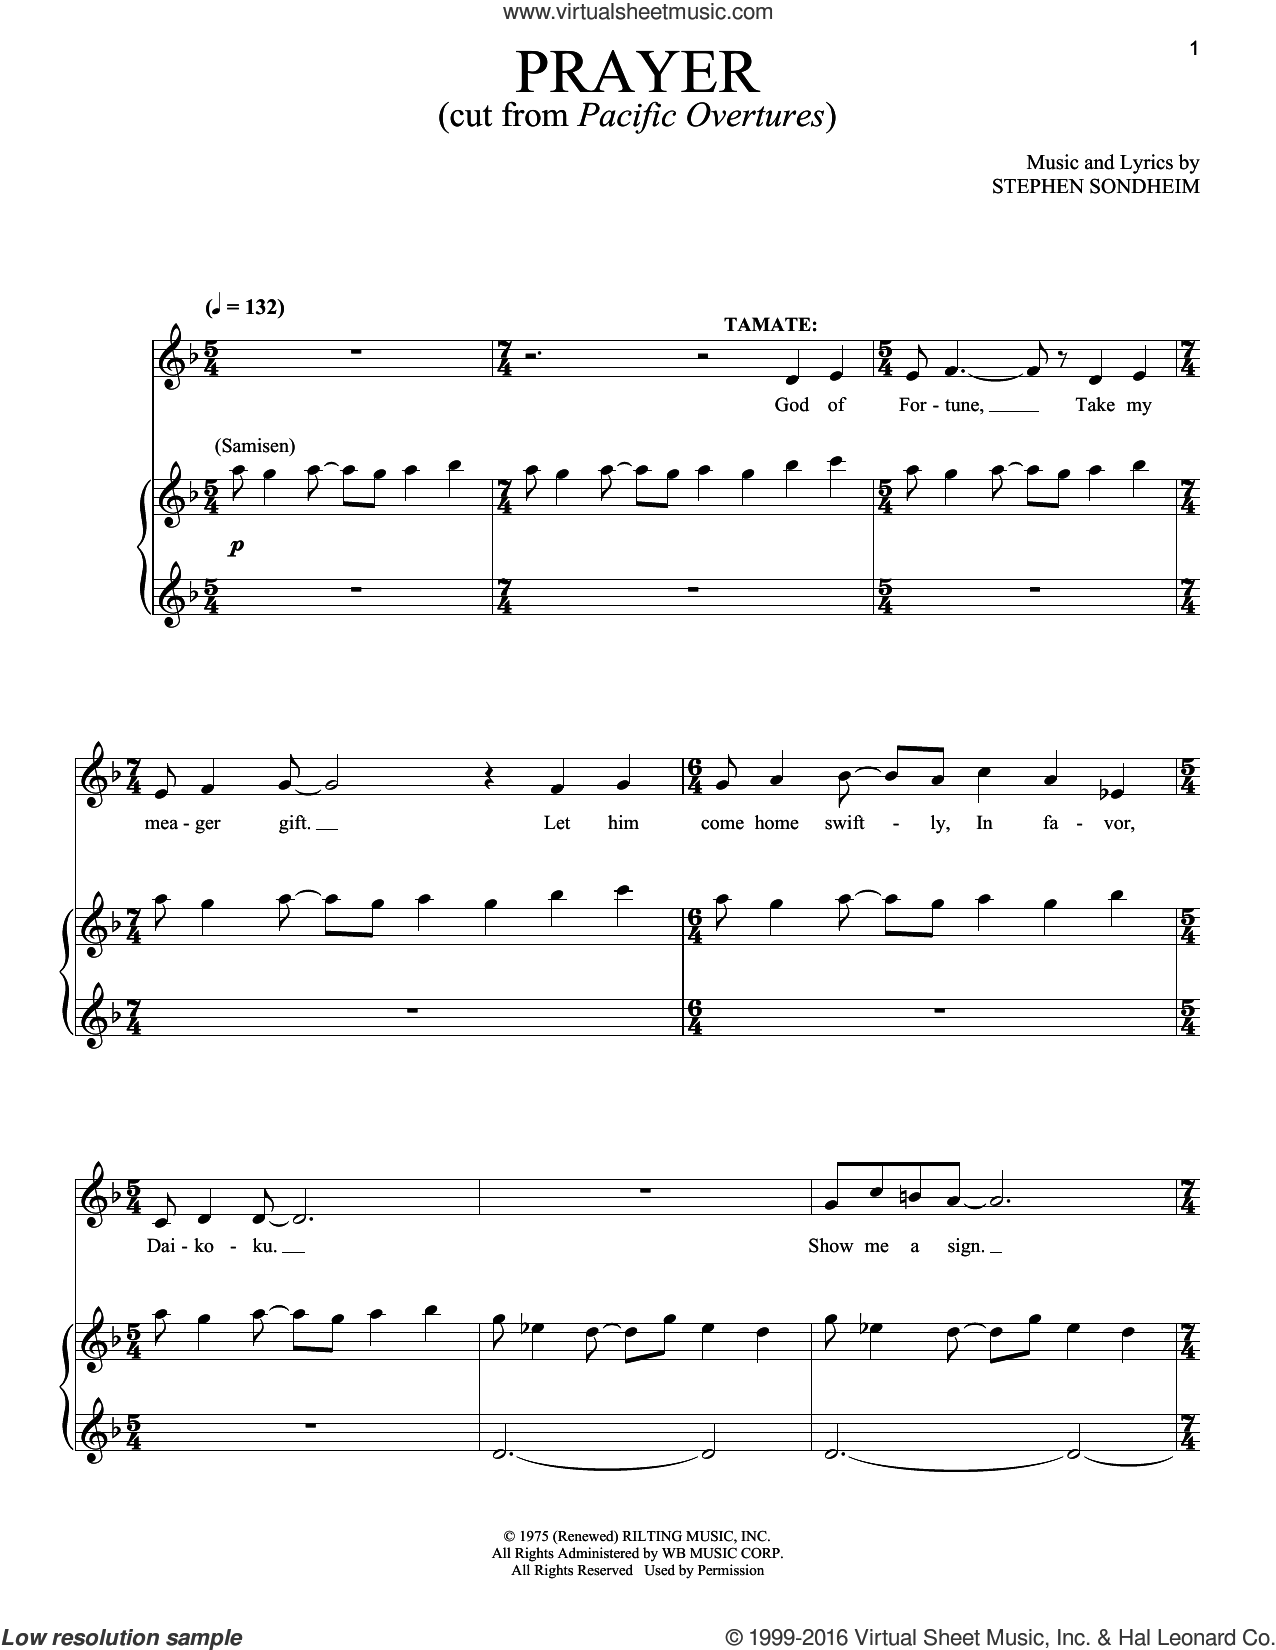 Prayers sheet music for voice and piano by Stephen Sondheim, intermediate skill level